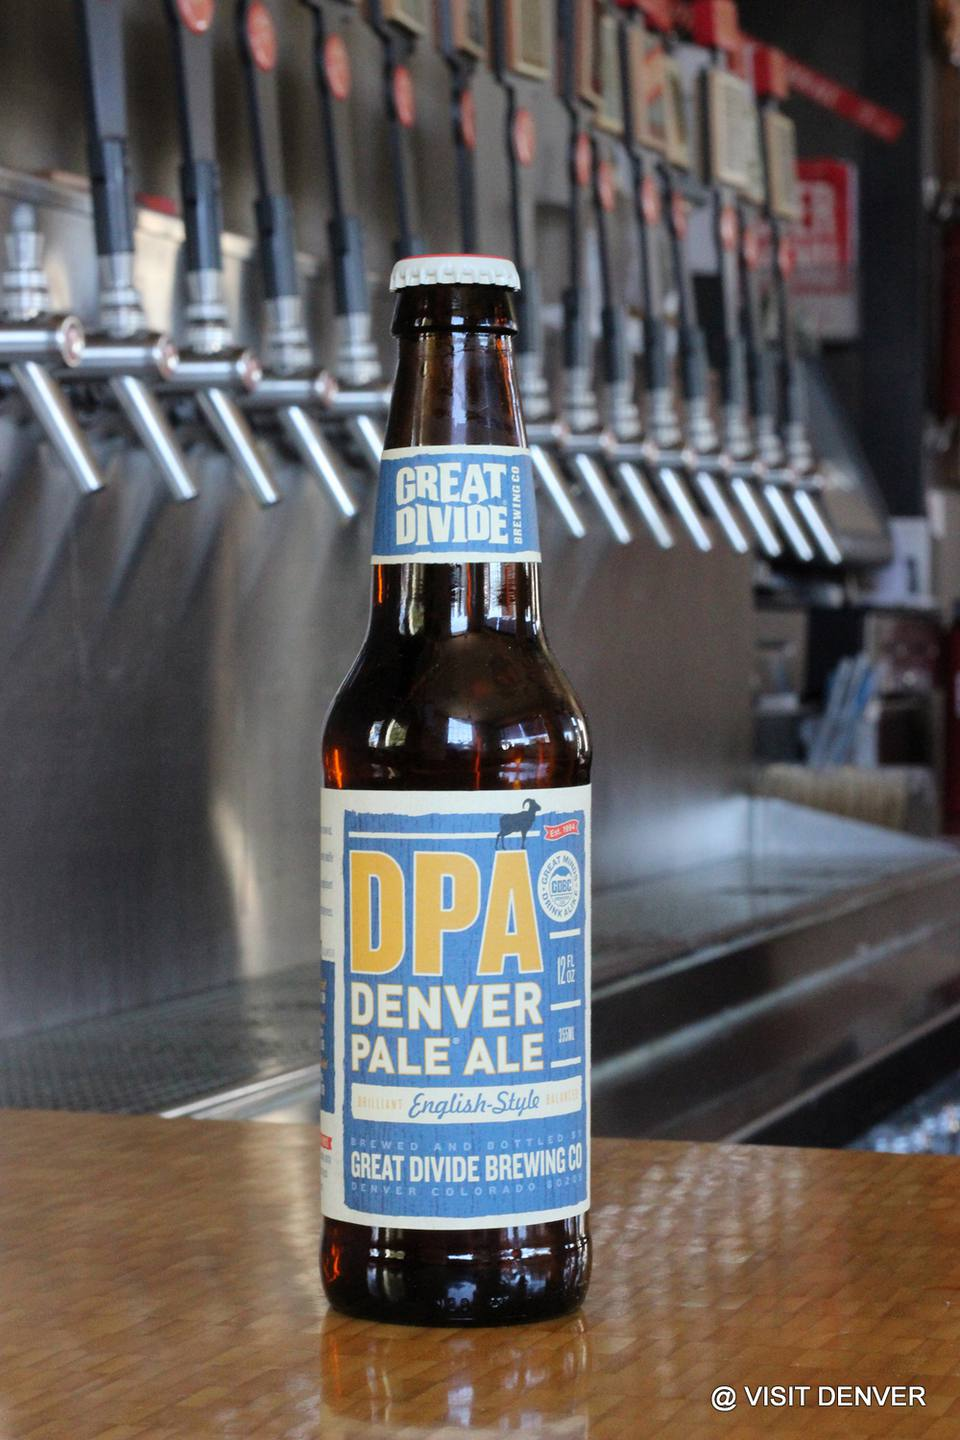 1-Great-Divide-Denver-Pale-Ale-Bottle.jpg